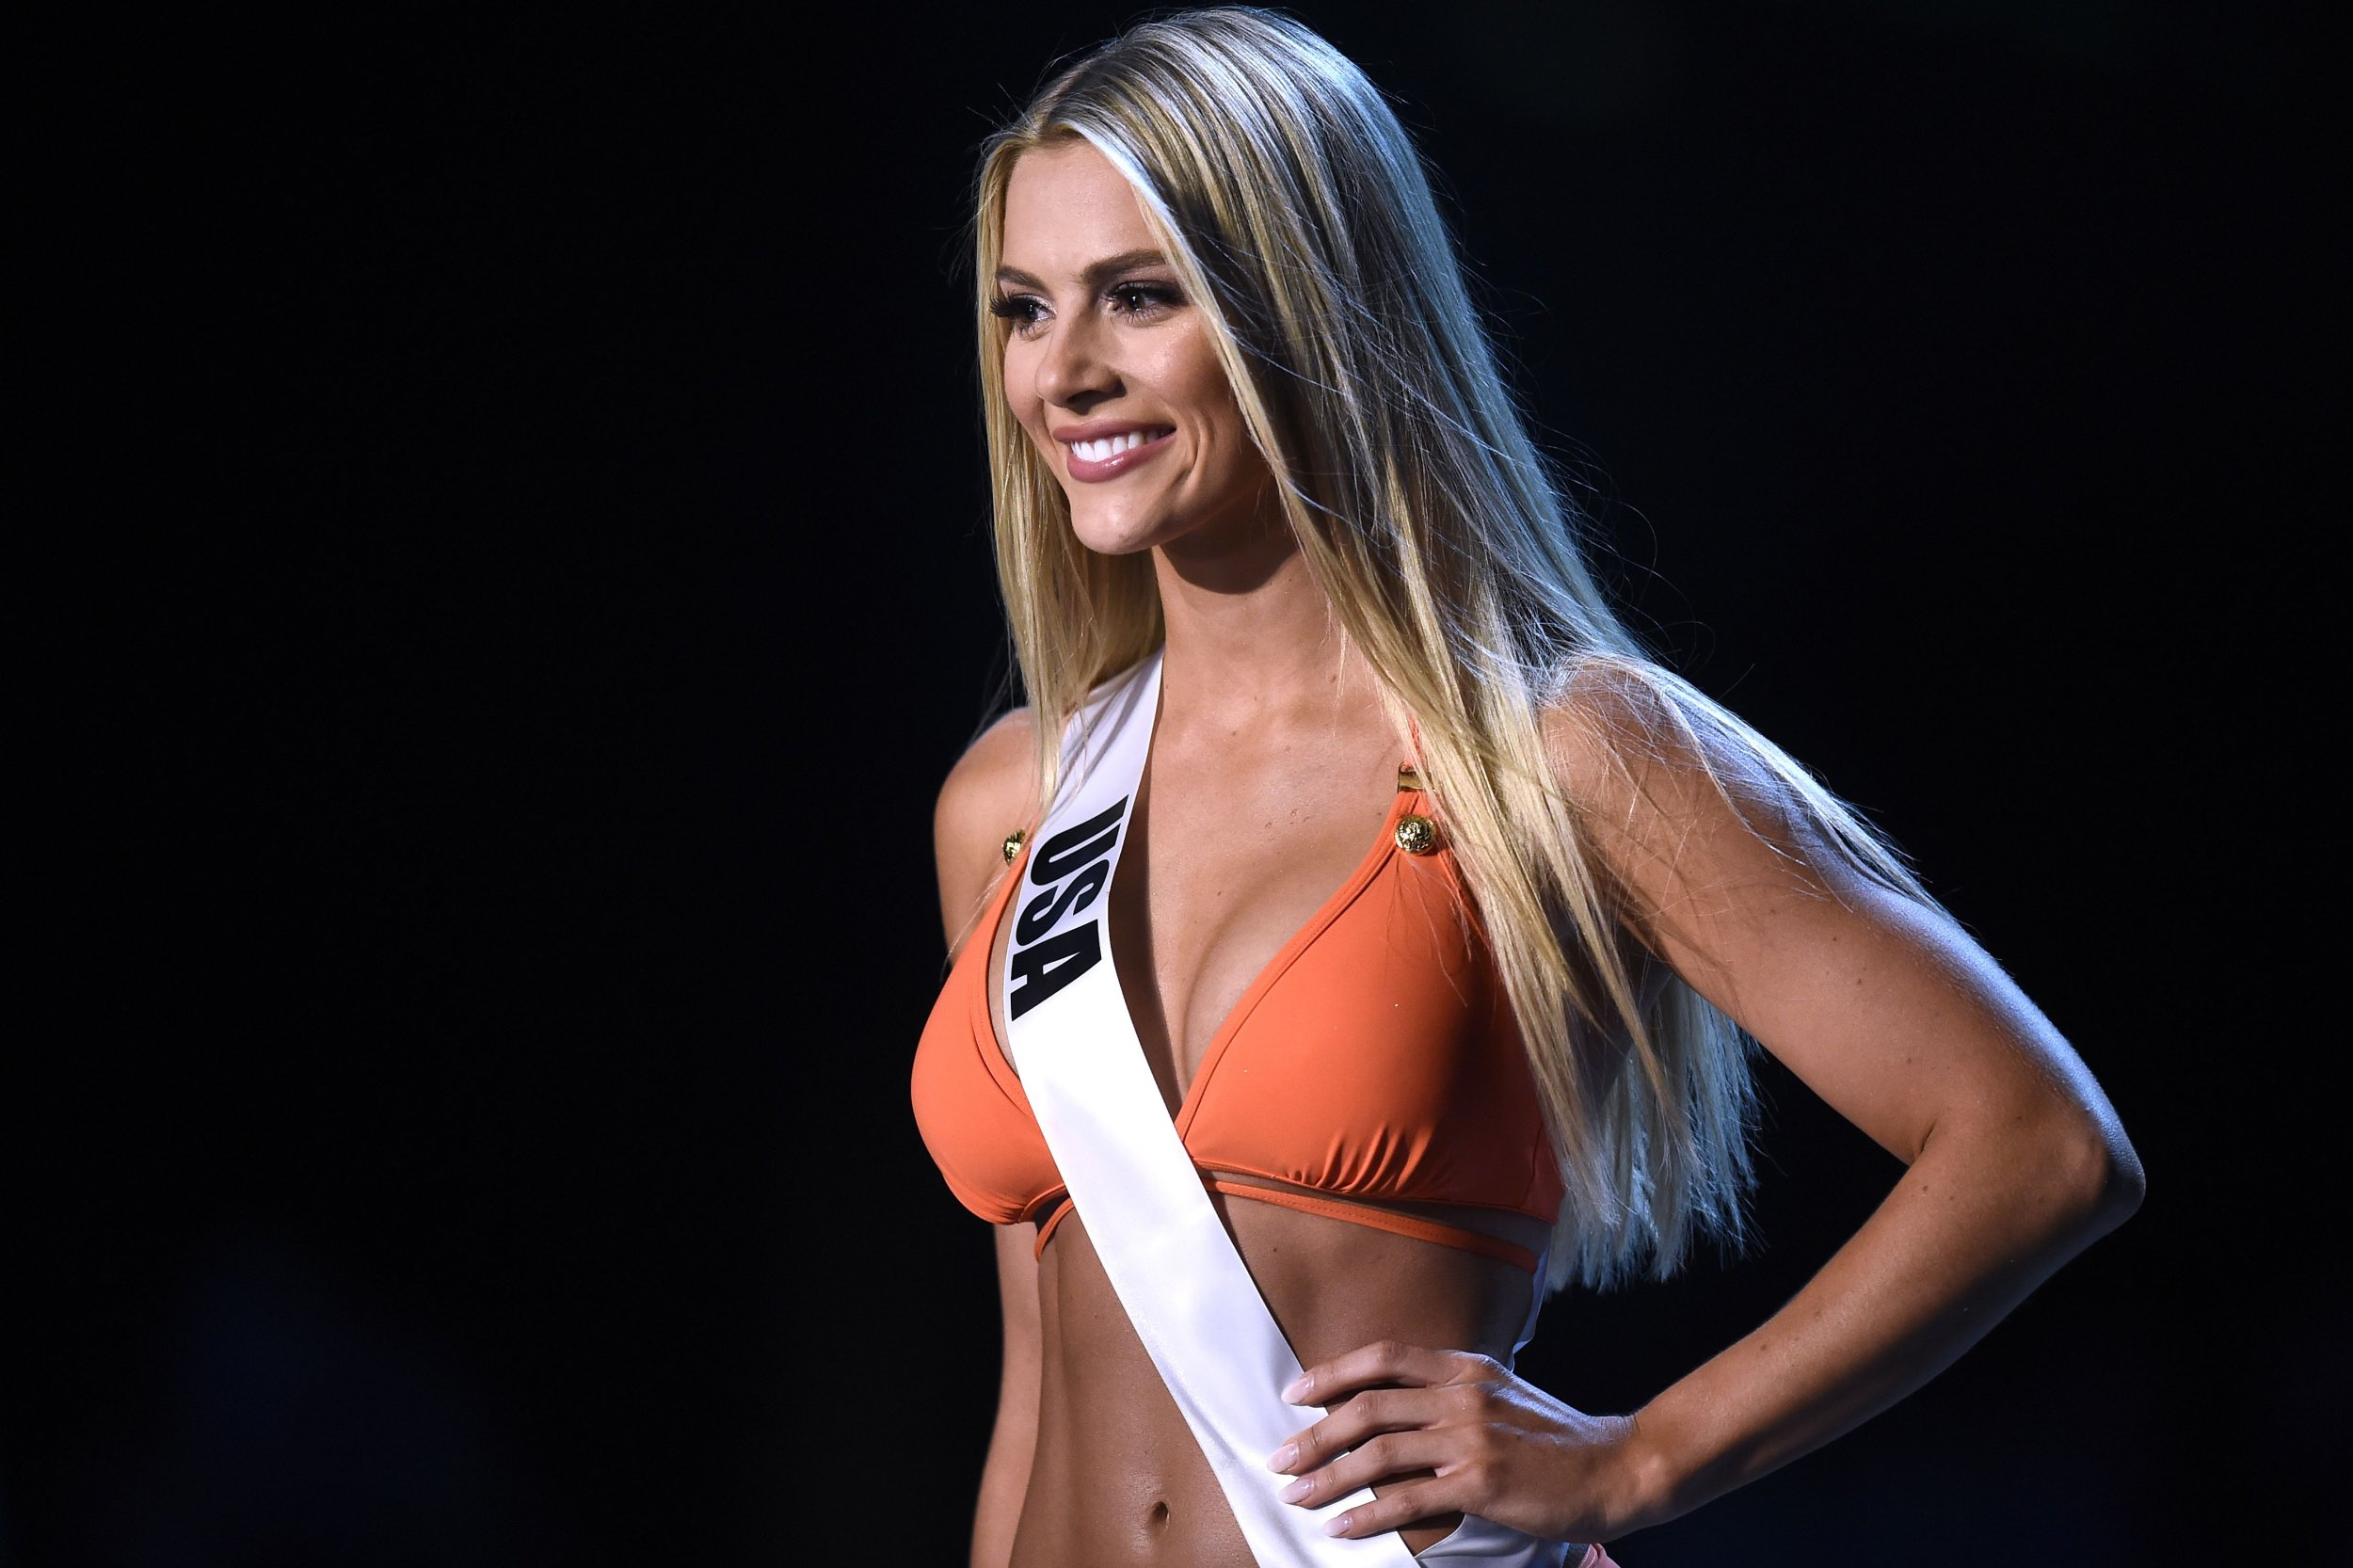 Miss USA Controversies